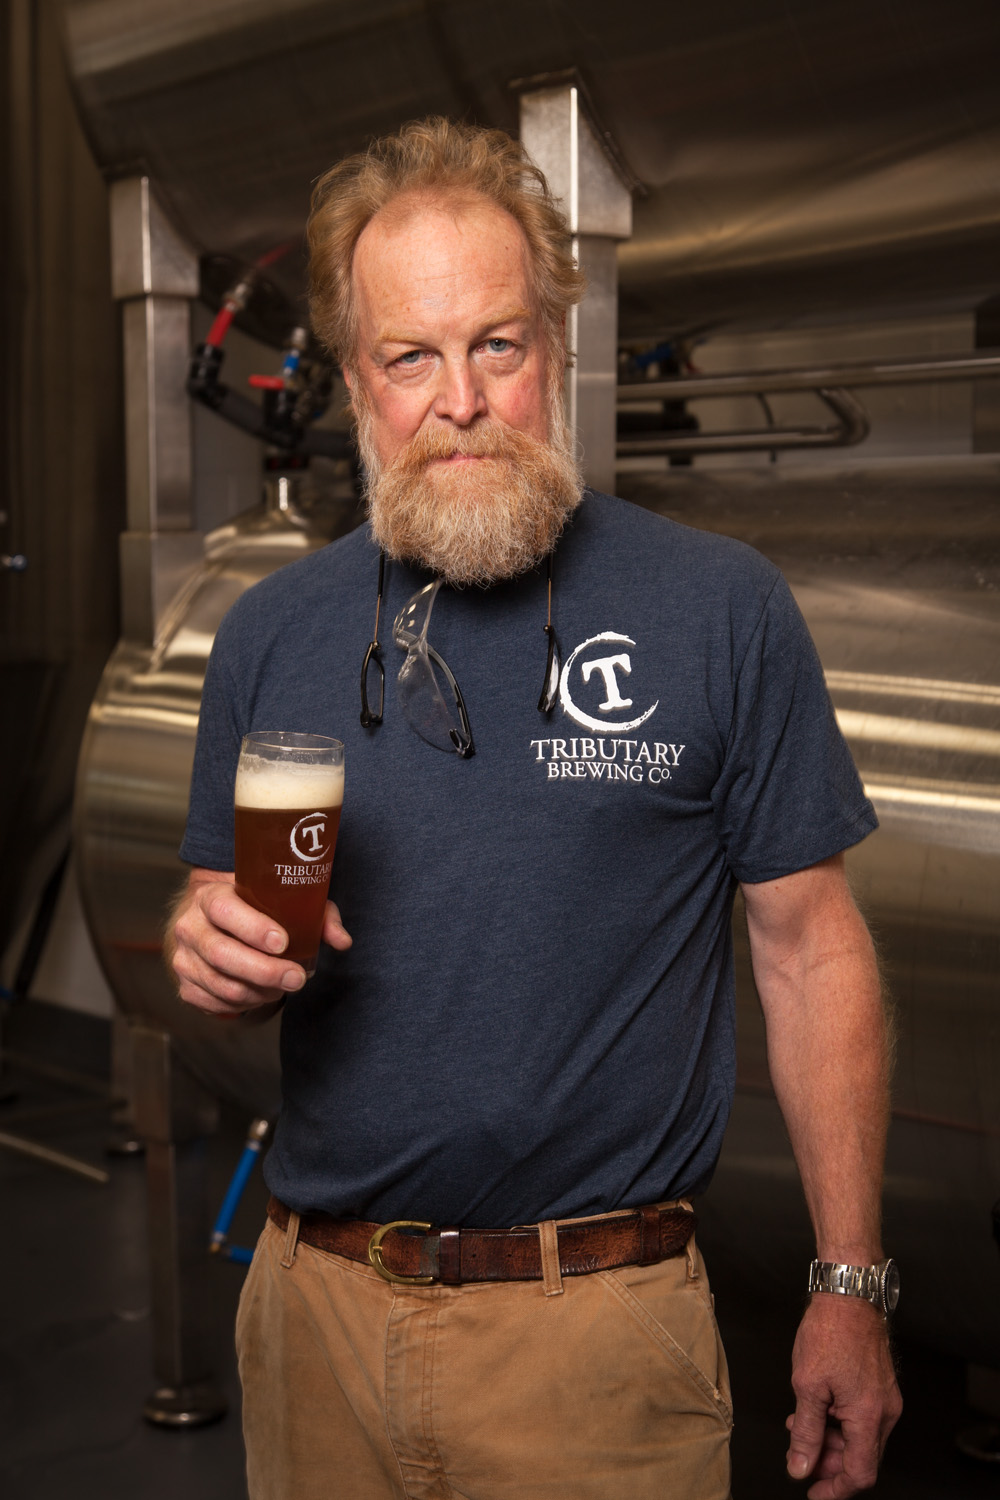 Tod Mott, Brewmaster Tributary Brewing Co. Kittery, ME Established in 2014